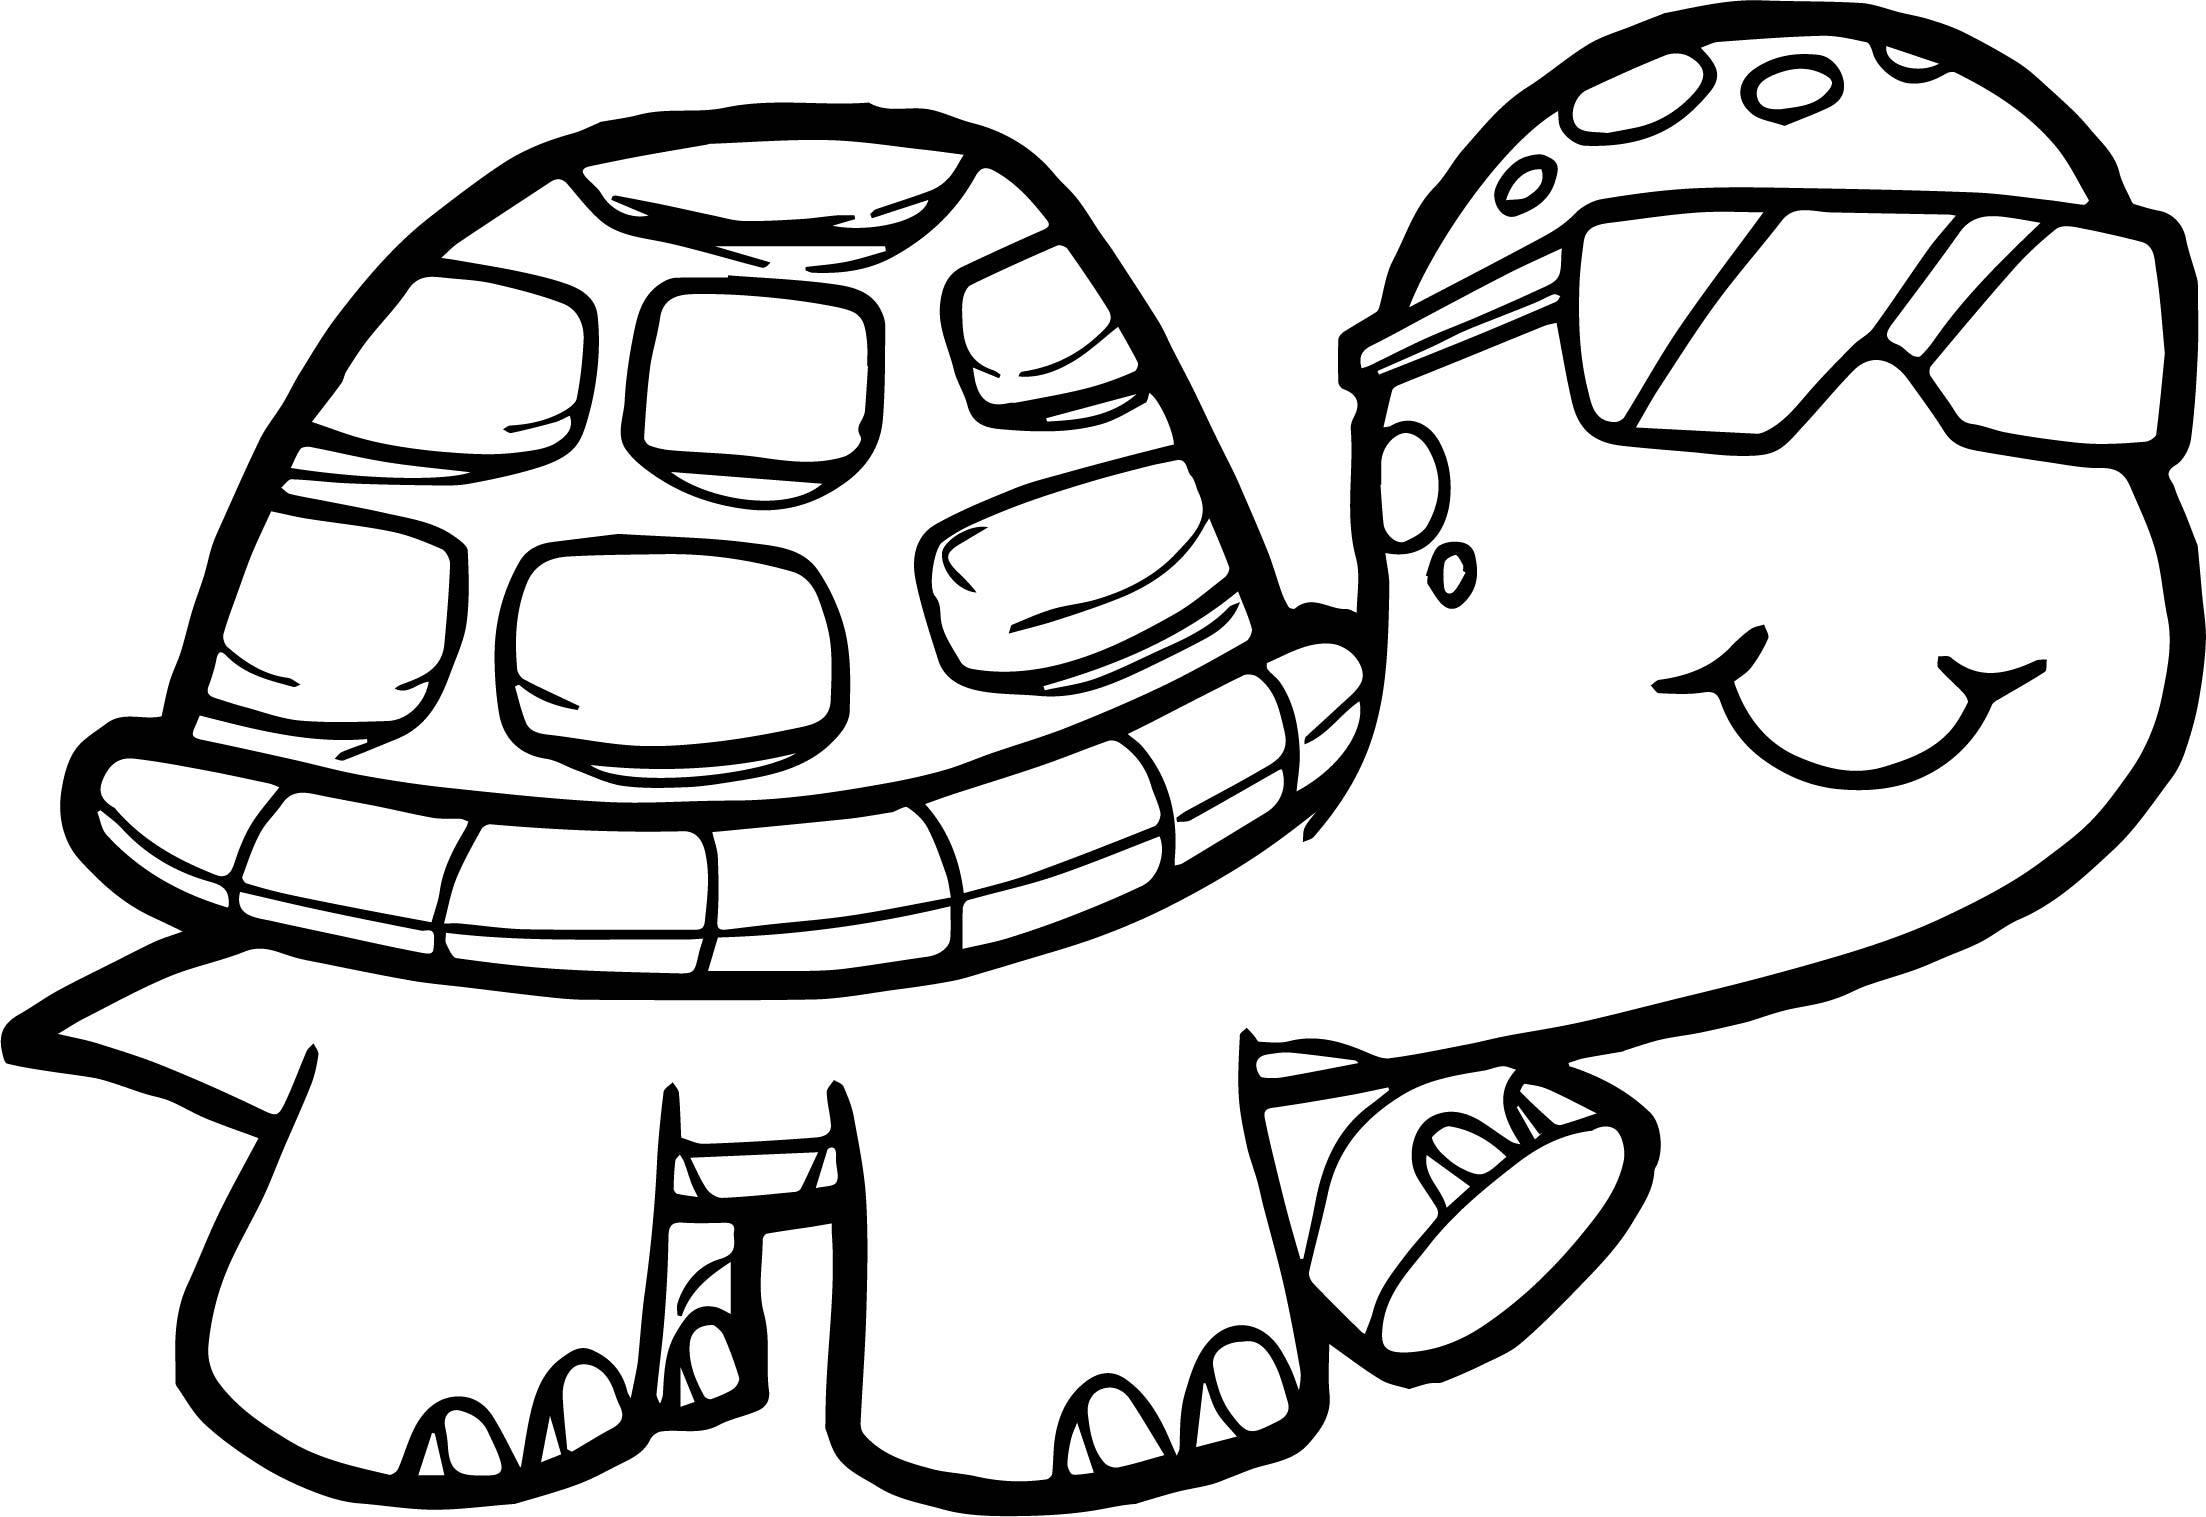 Uncategorized Coloring Page Turtle glasses tortoise turtle coloring page wecoloringpage page